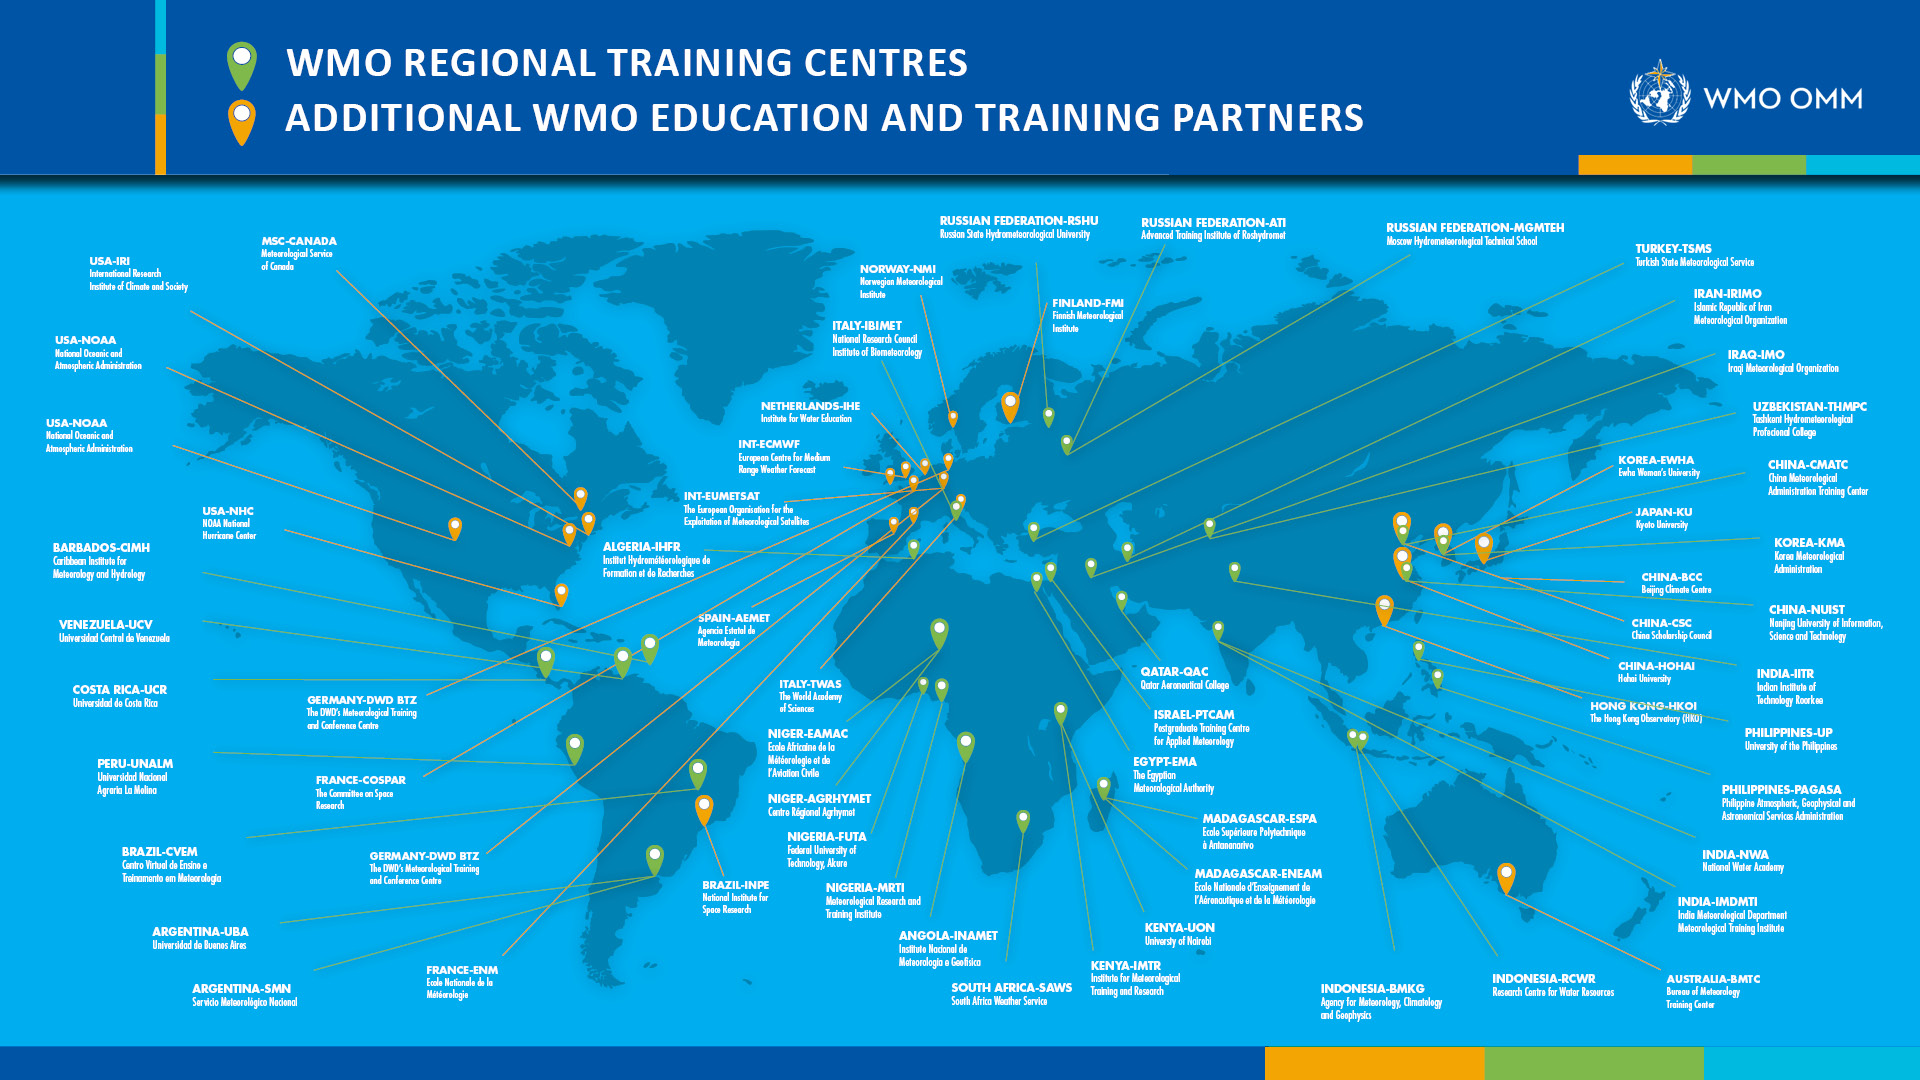 map of the globe with indications and RTCs and other collaborating institutions and partners